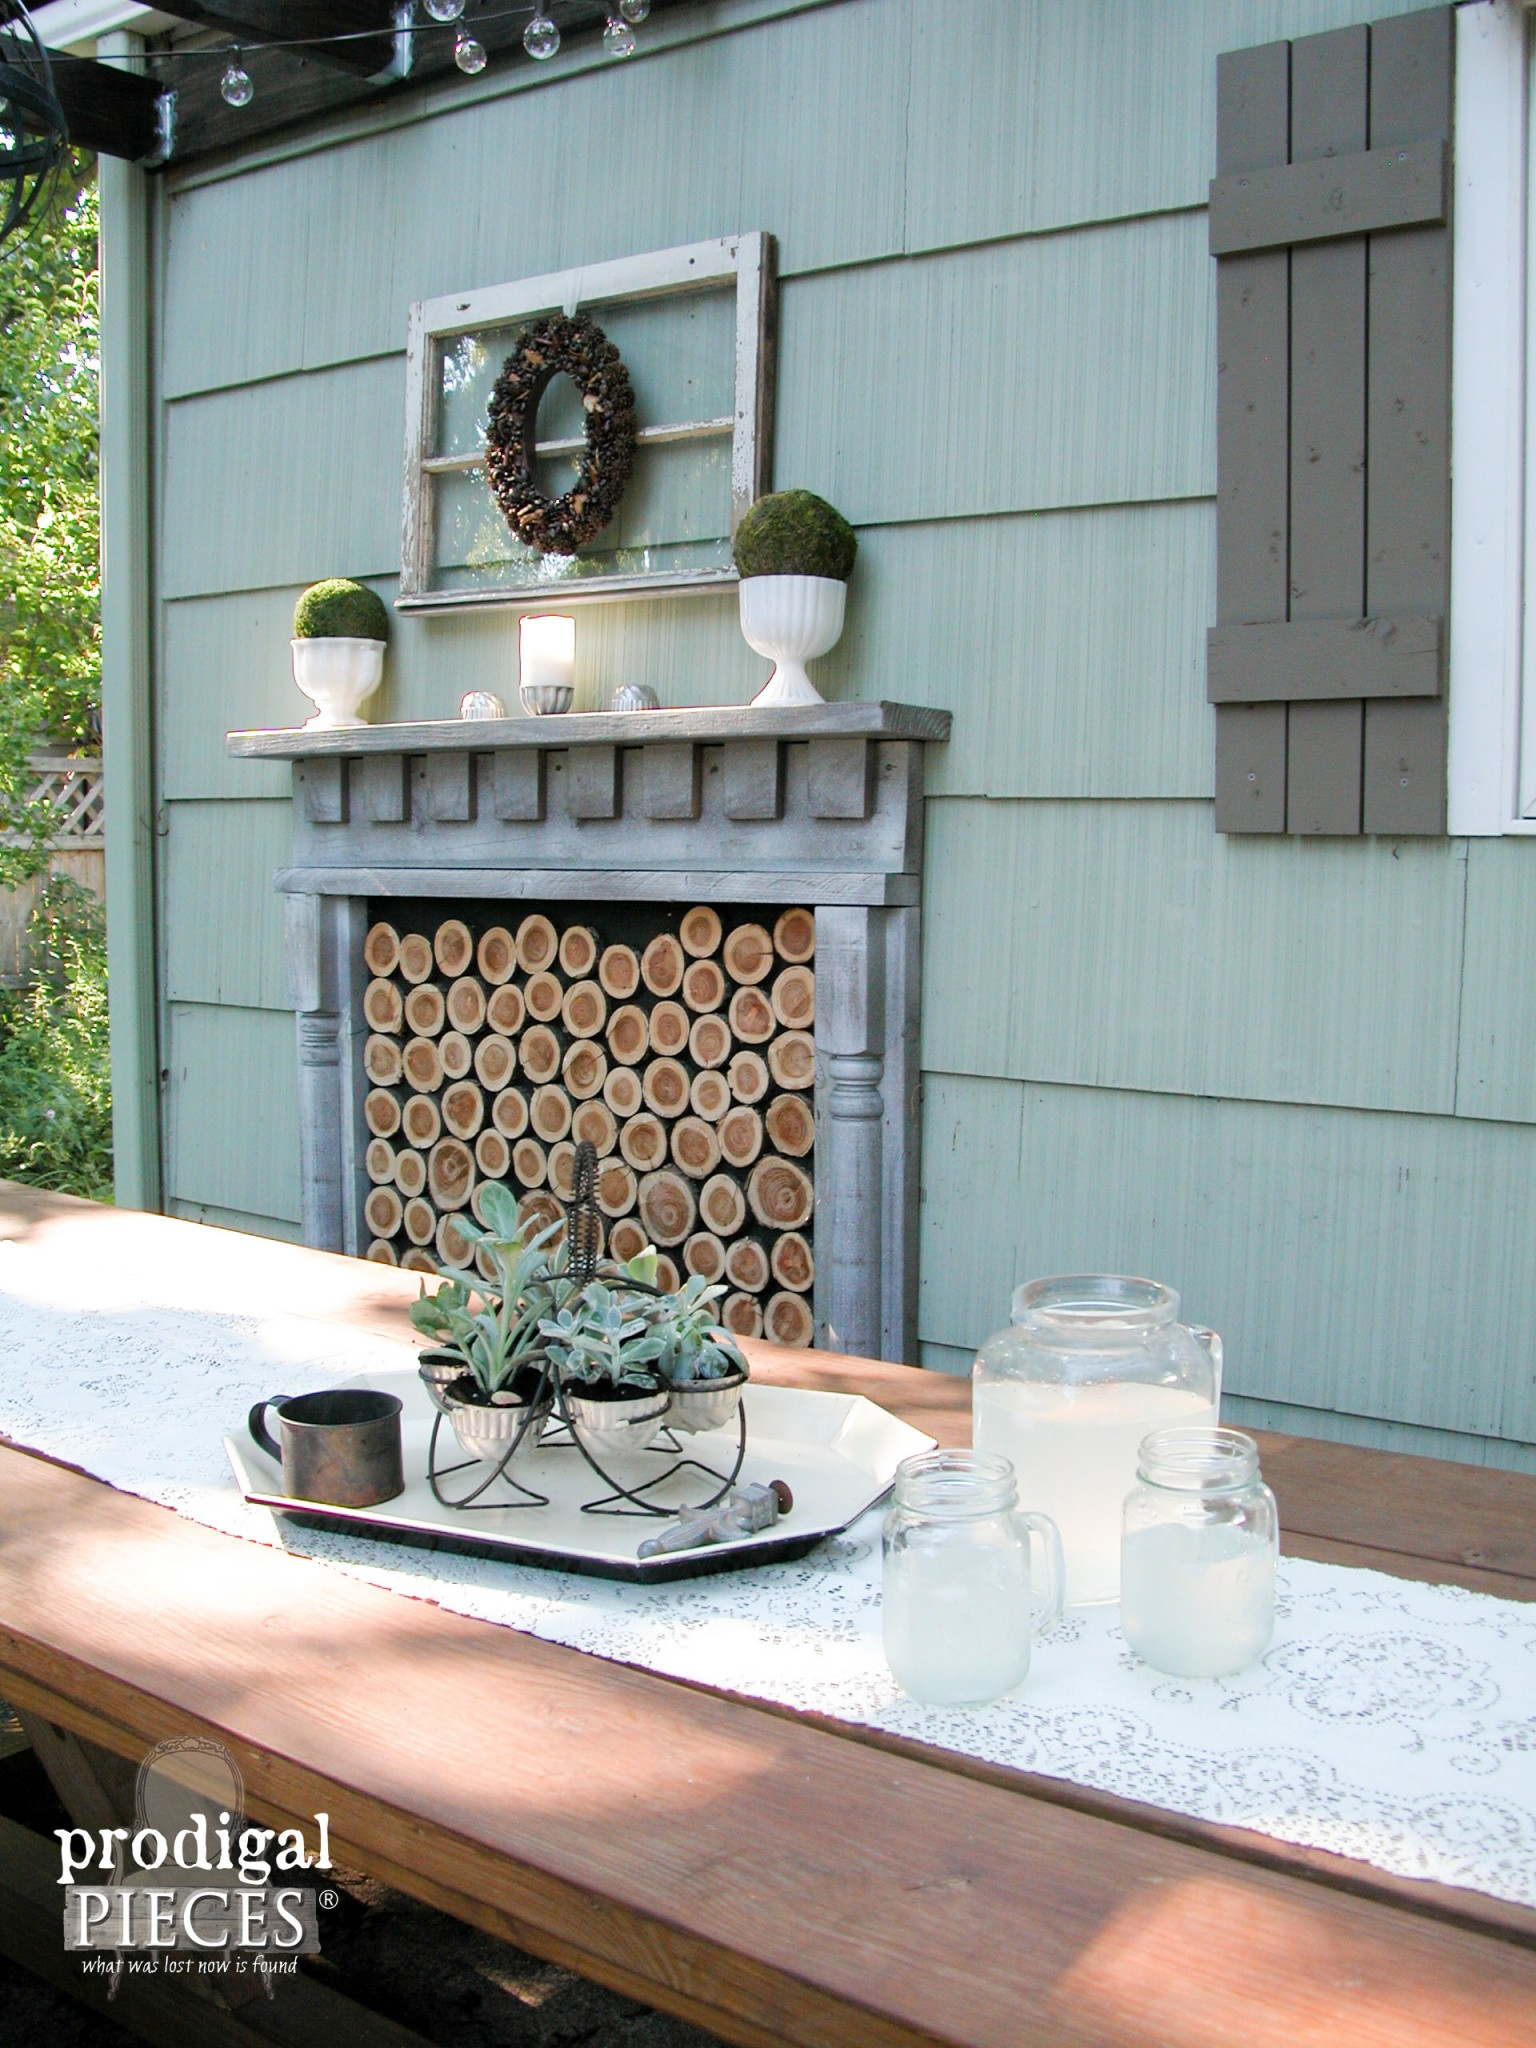 Rustic Patio with Succulents and Faux Fireplace by Prodigal Pieces | www.prodigalpieces.com